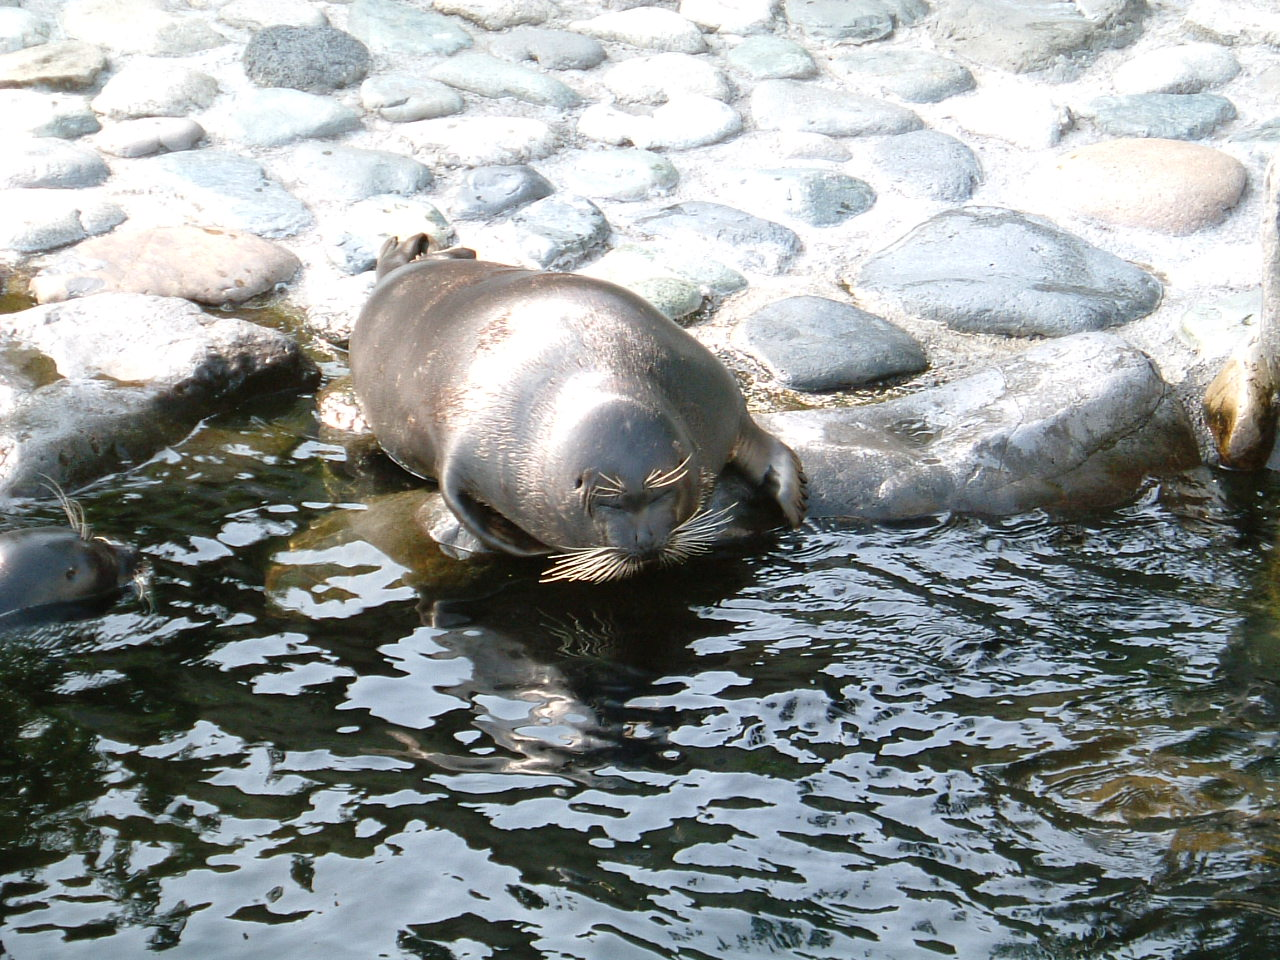 https://upload.wikimedia.org/wikipedia/commons/6/6c/Baikal_seal_200507_hakone_japan.JPG